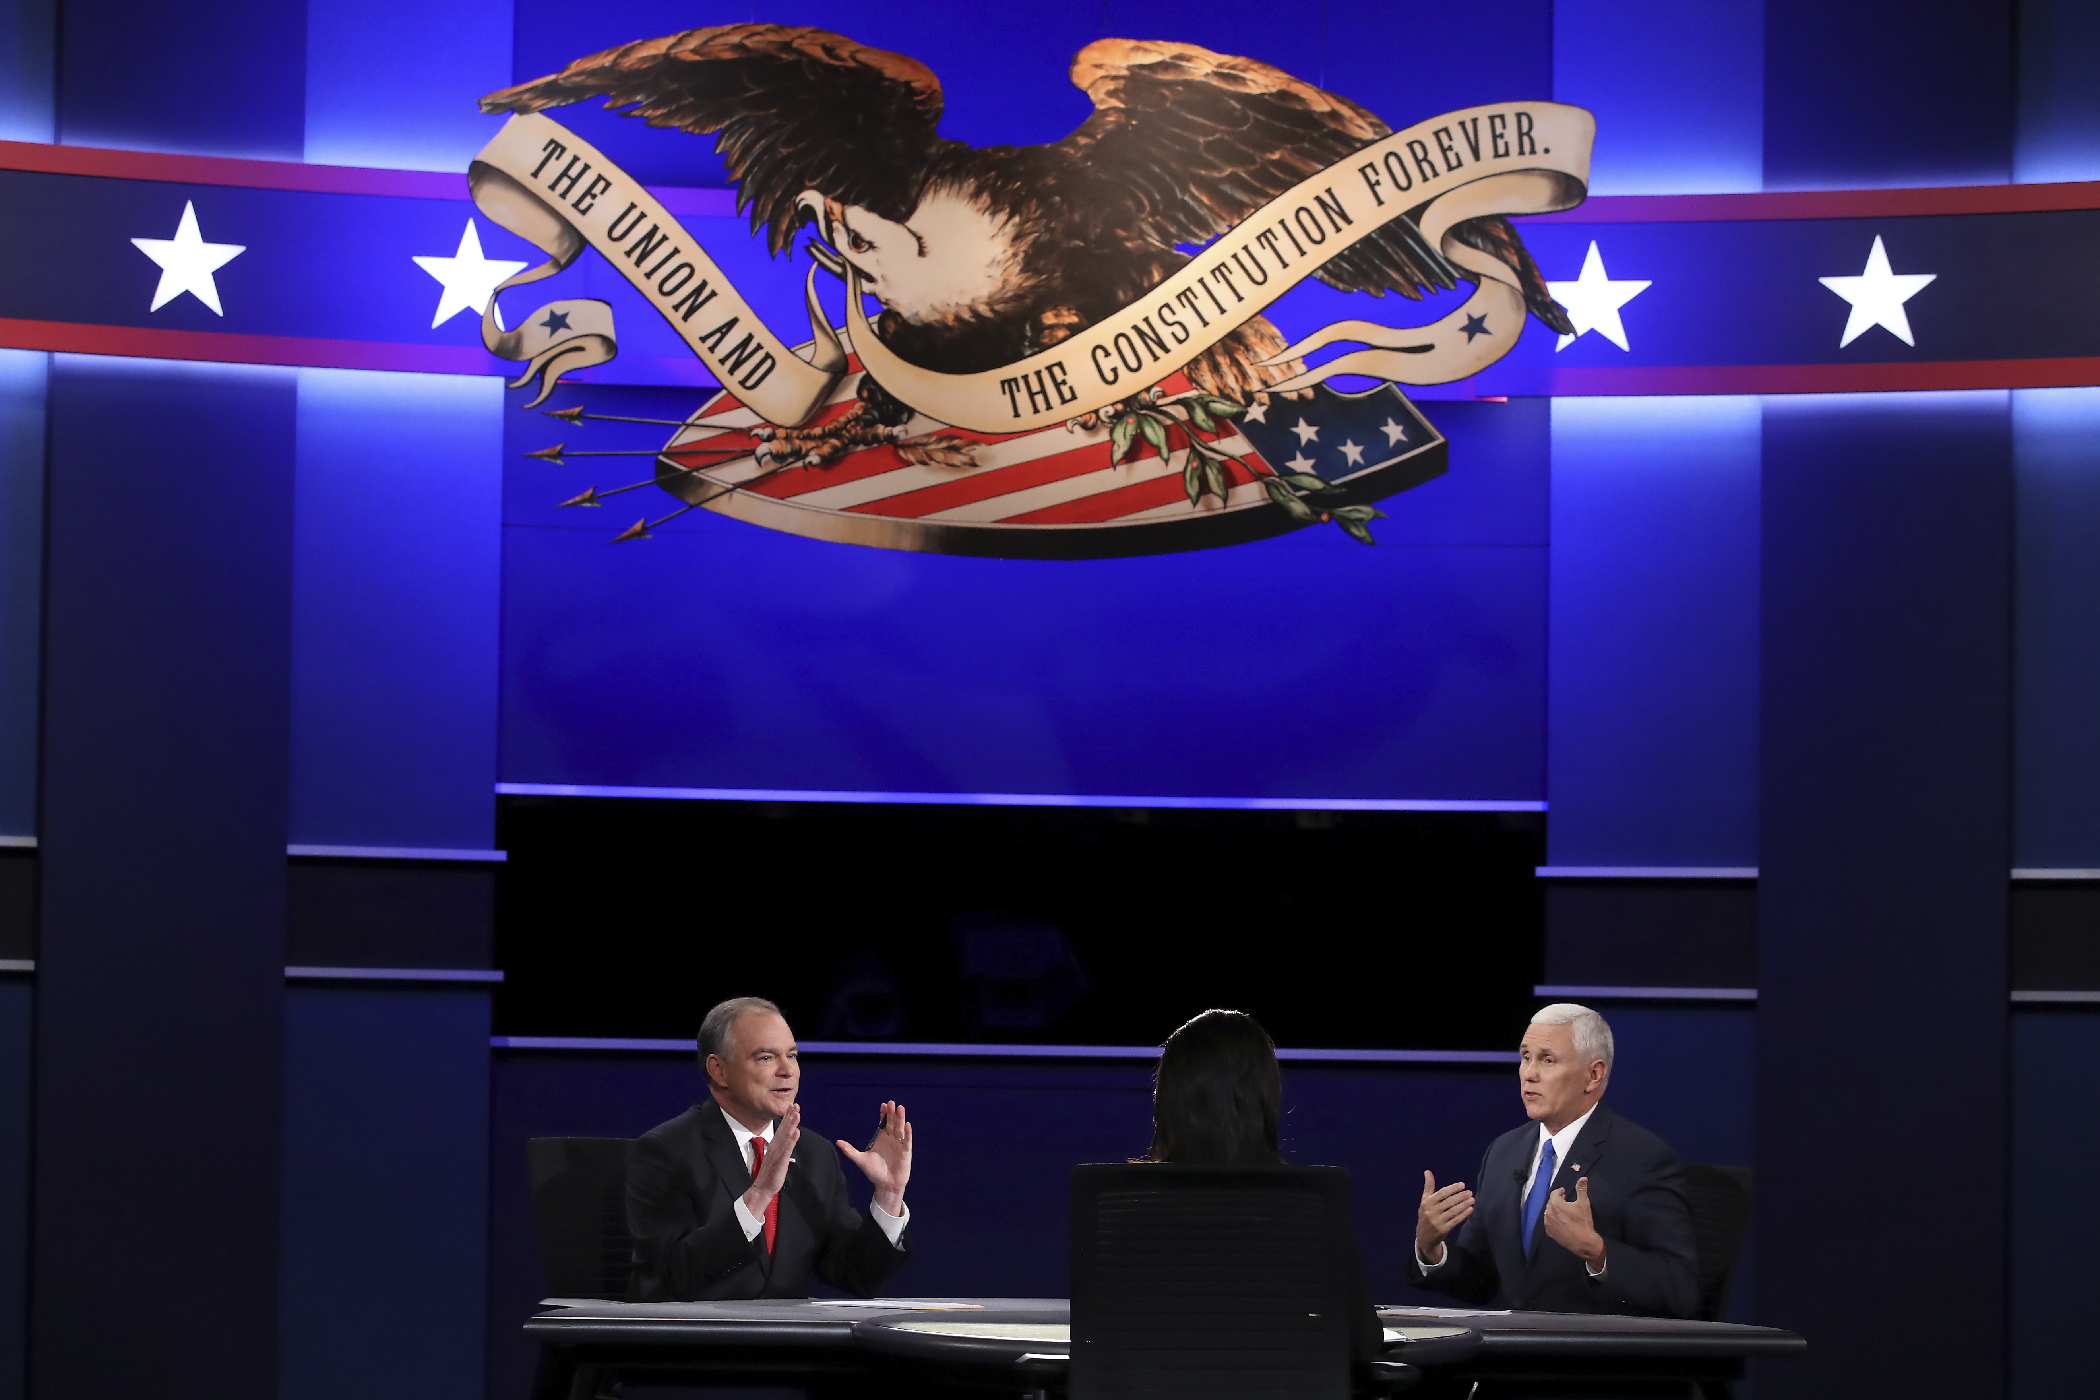 Pence and Kaine Talk Jobs, Taxes, and Social Security at the Vice Presidential Debate